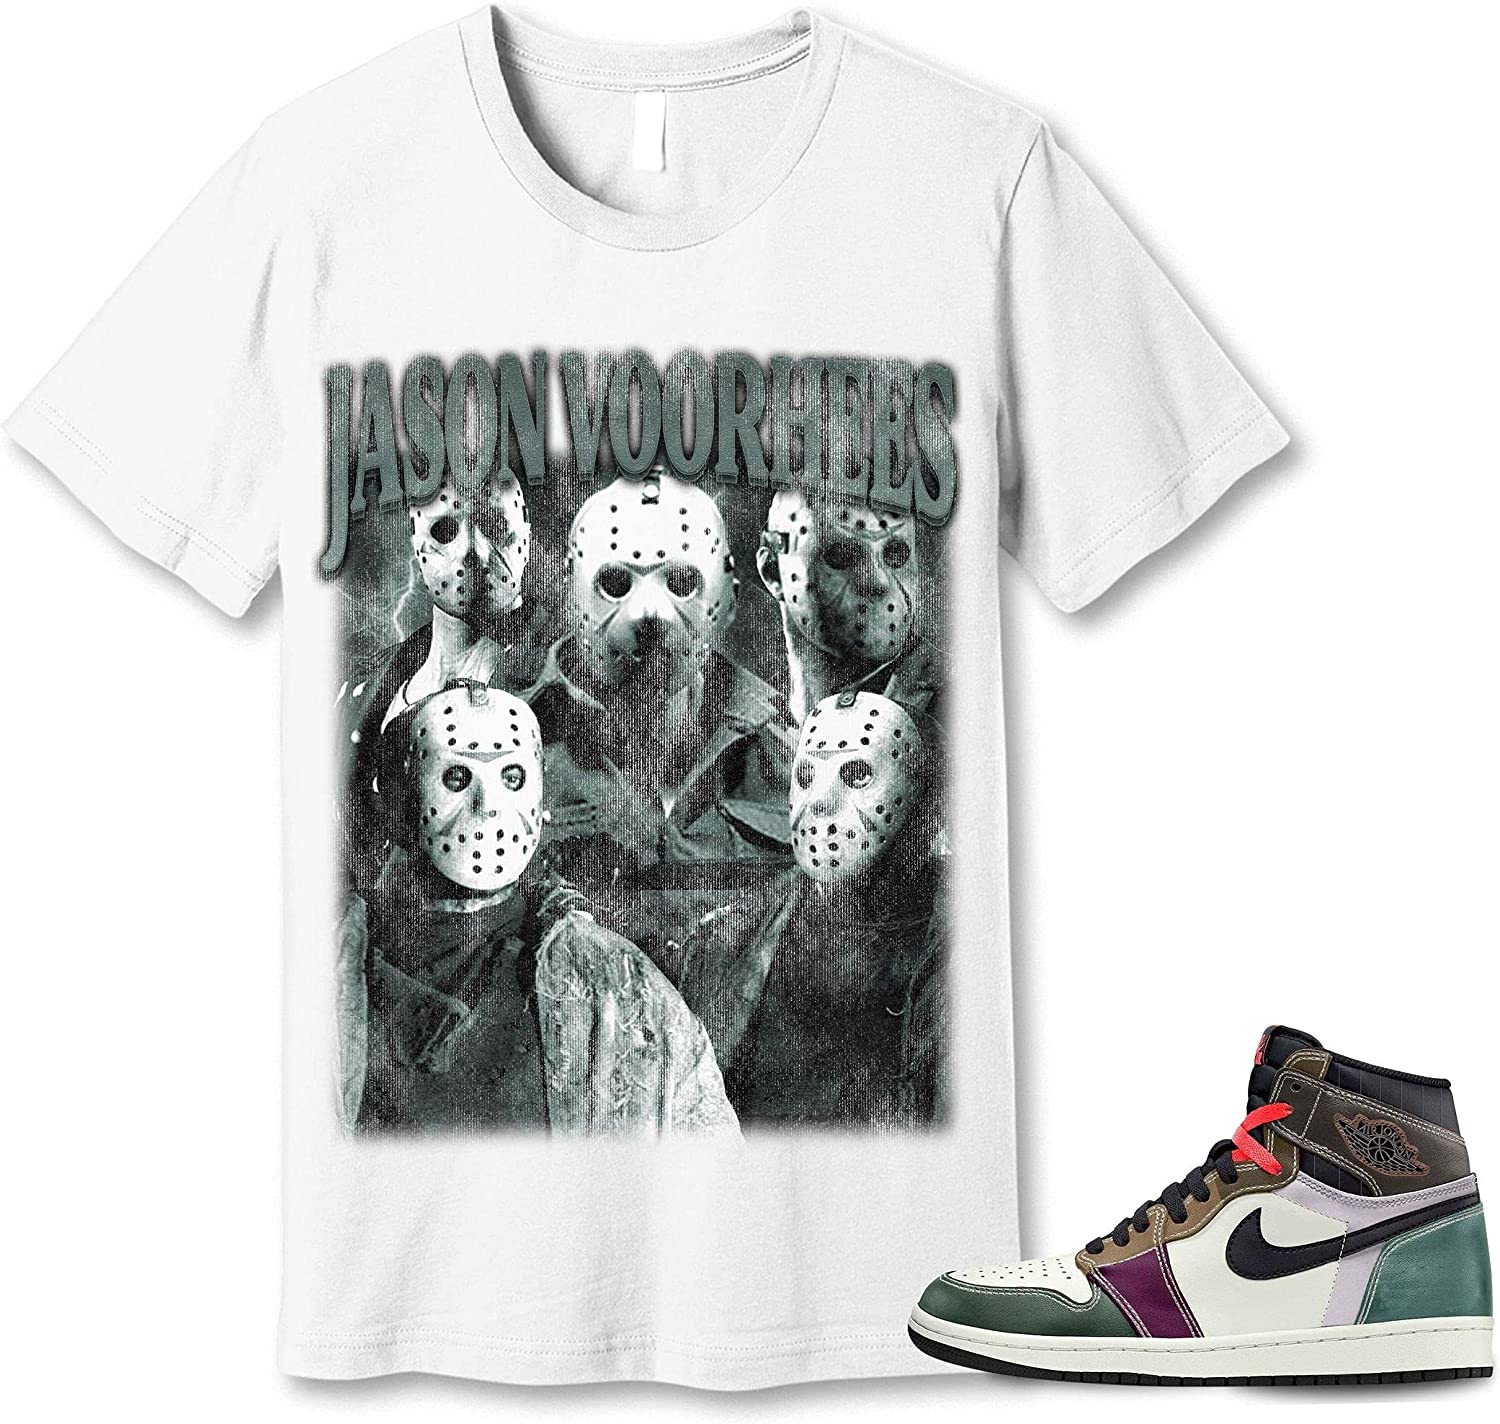 #Jason Ranking TOP20 #Voorhees T-Shirt Sales results No. 1 to Match Hand Crafted Jordan Sneaker